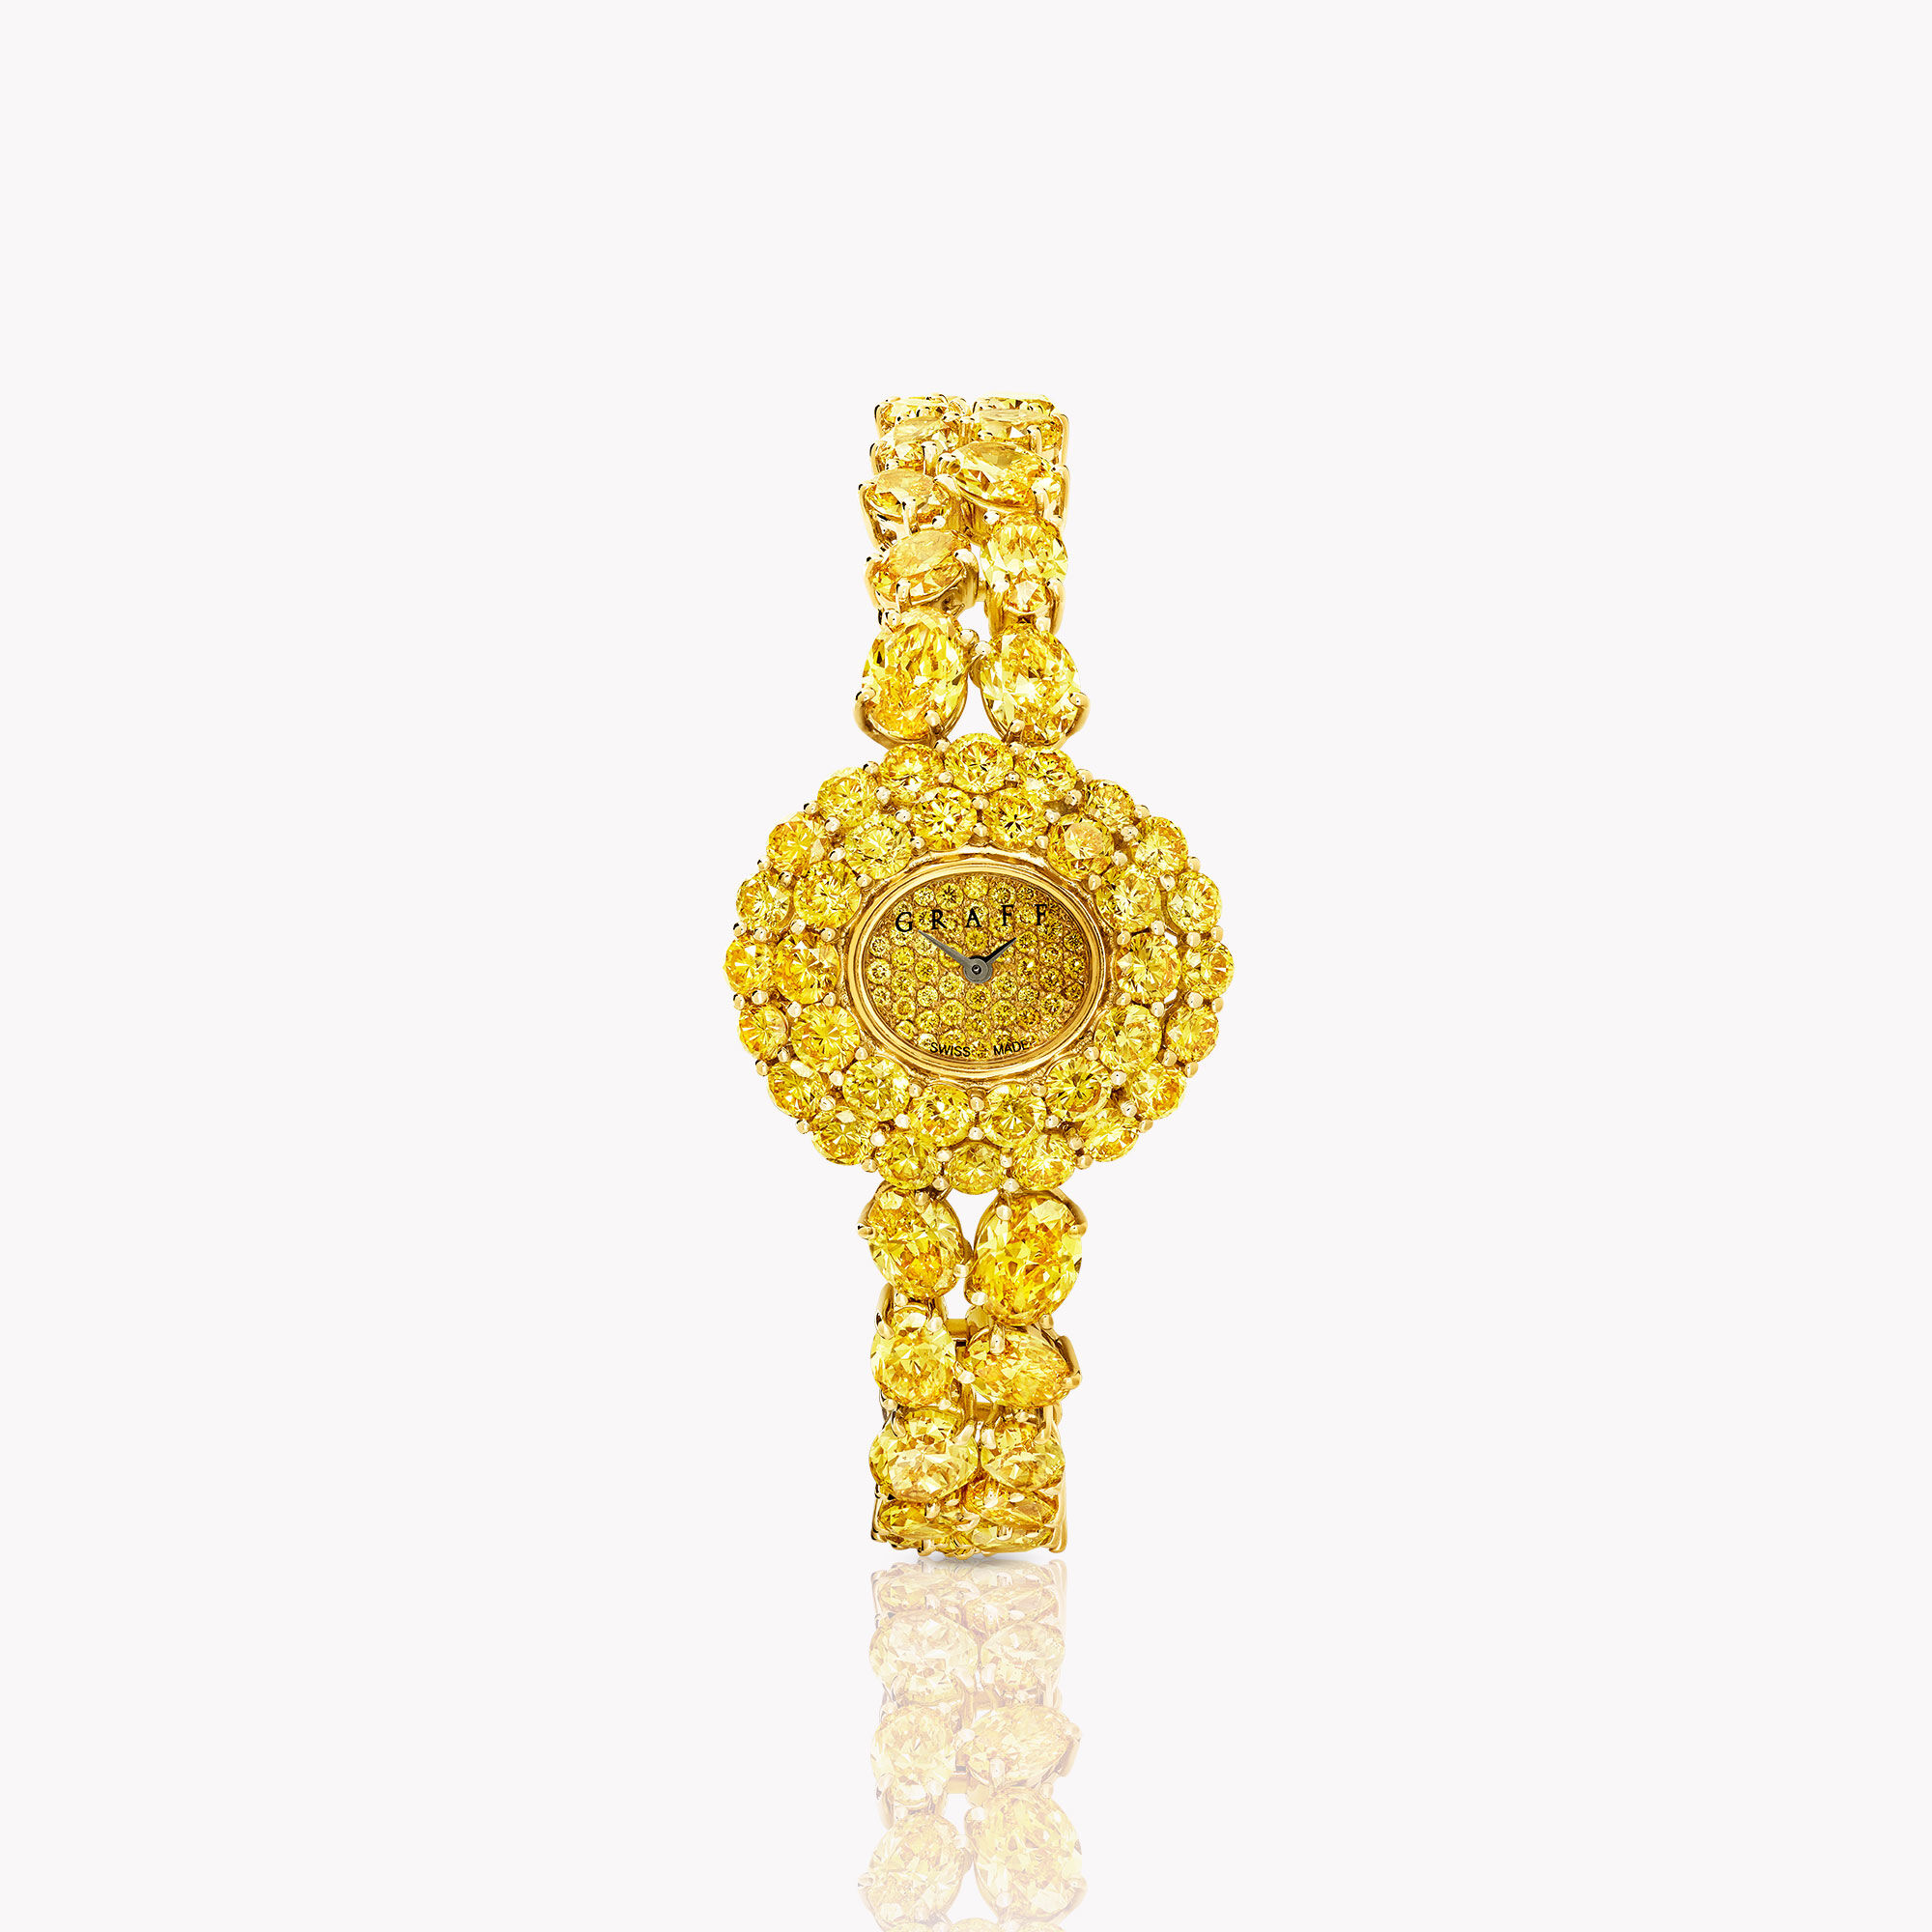 Oval Fancy Vivid Diamond Watch from the Graff unique timepieces collection